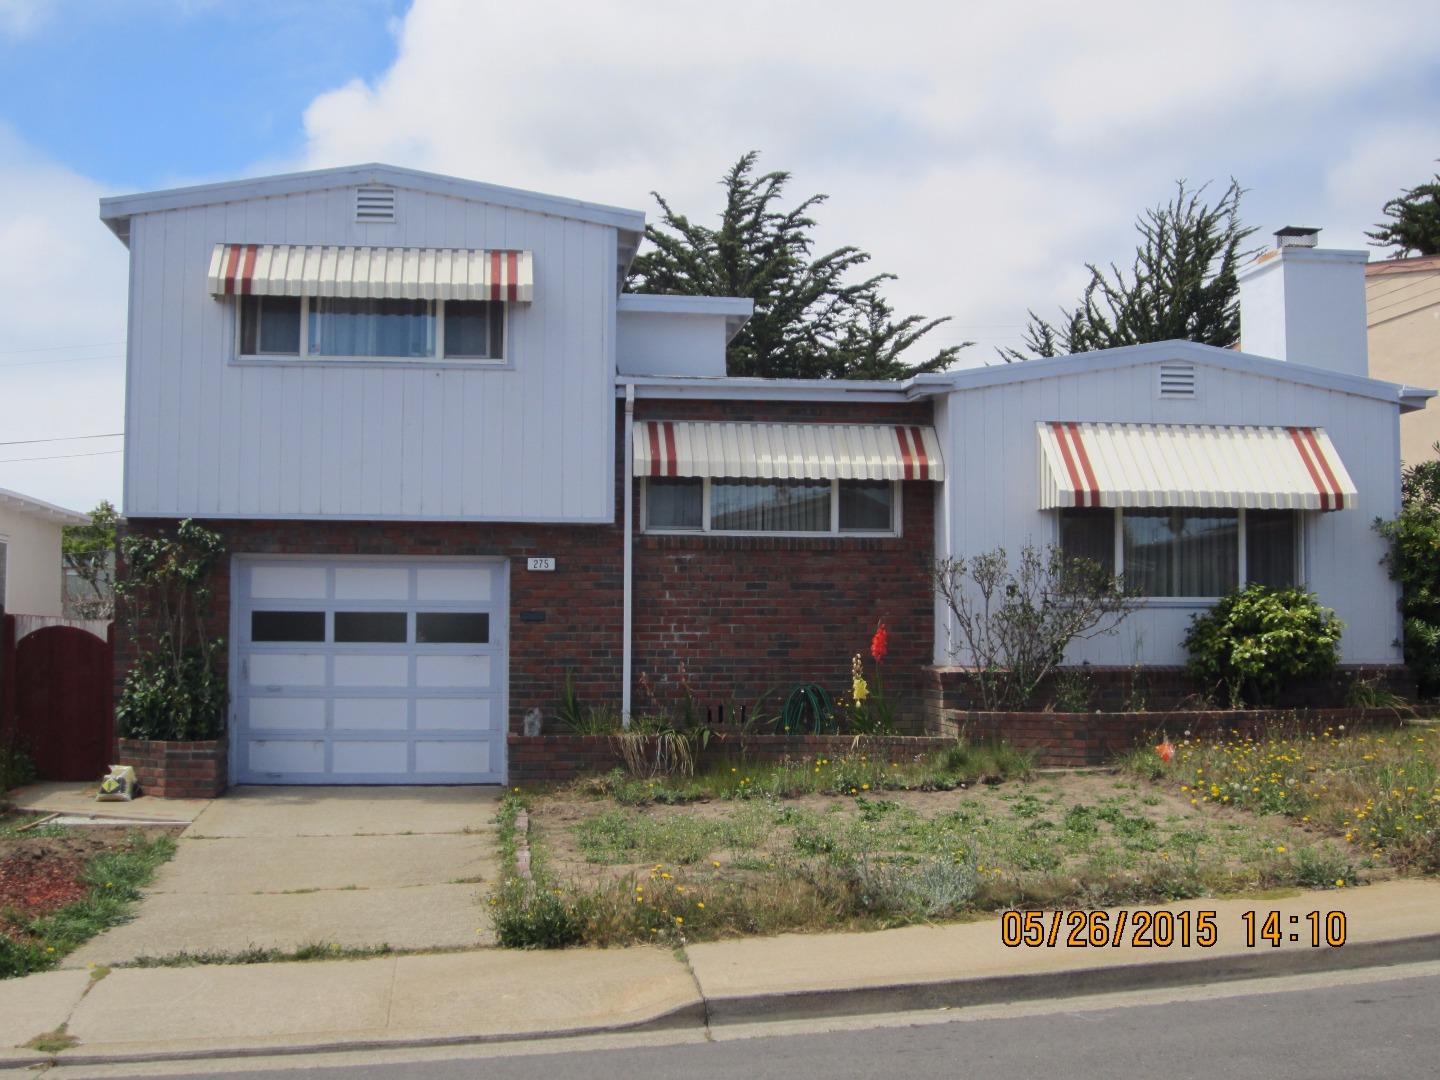 275 Holly Ave, South San Francisco, CA 94080